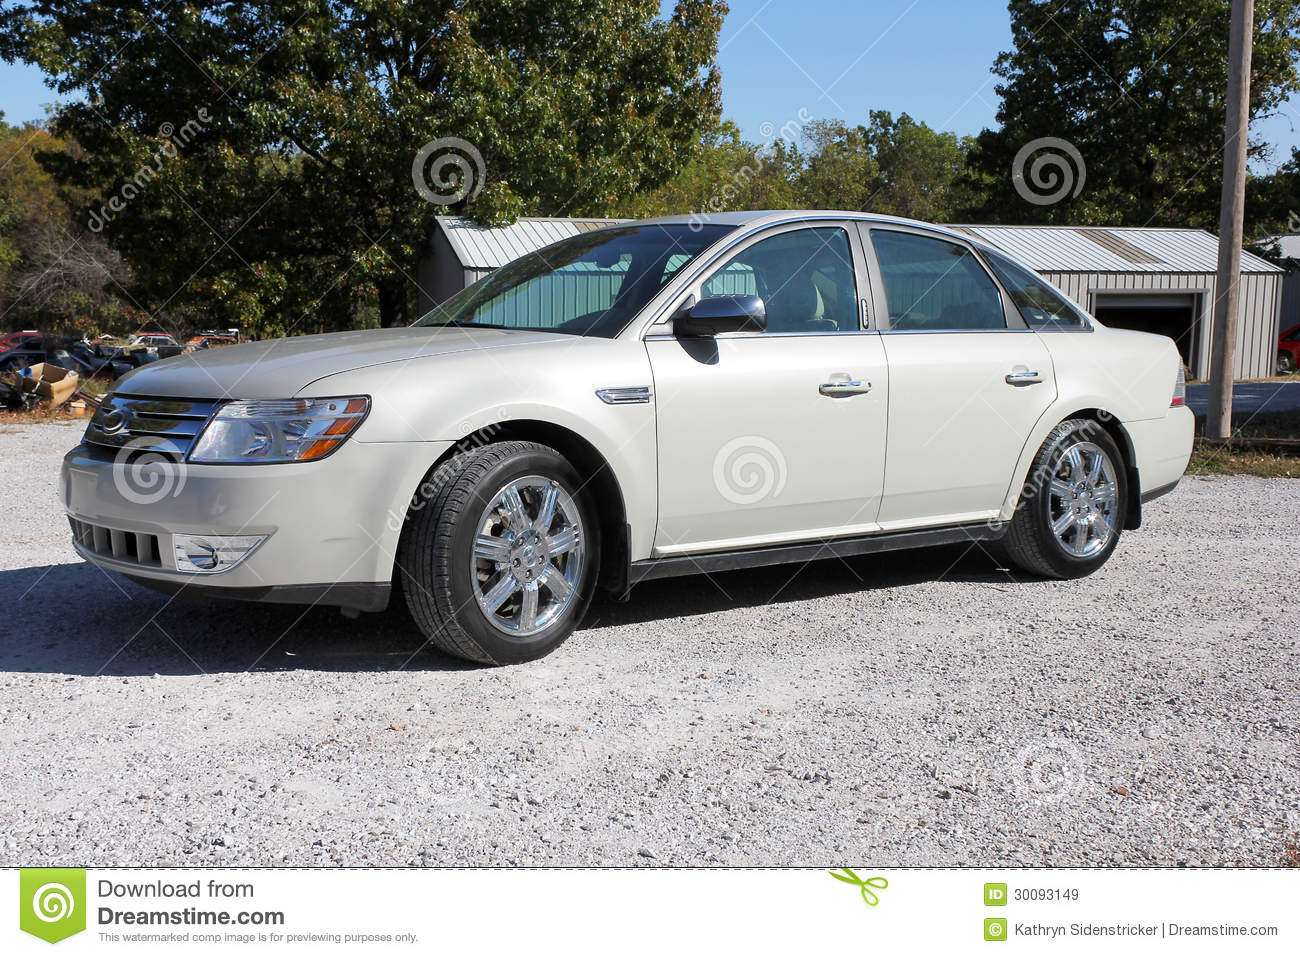 2008 ford taurus four door sedan royalty free stock images. Black Bedroom Furniture Sets. Home Design Ideas